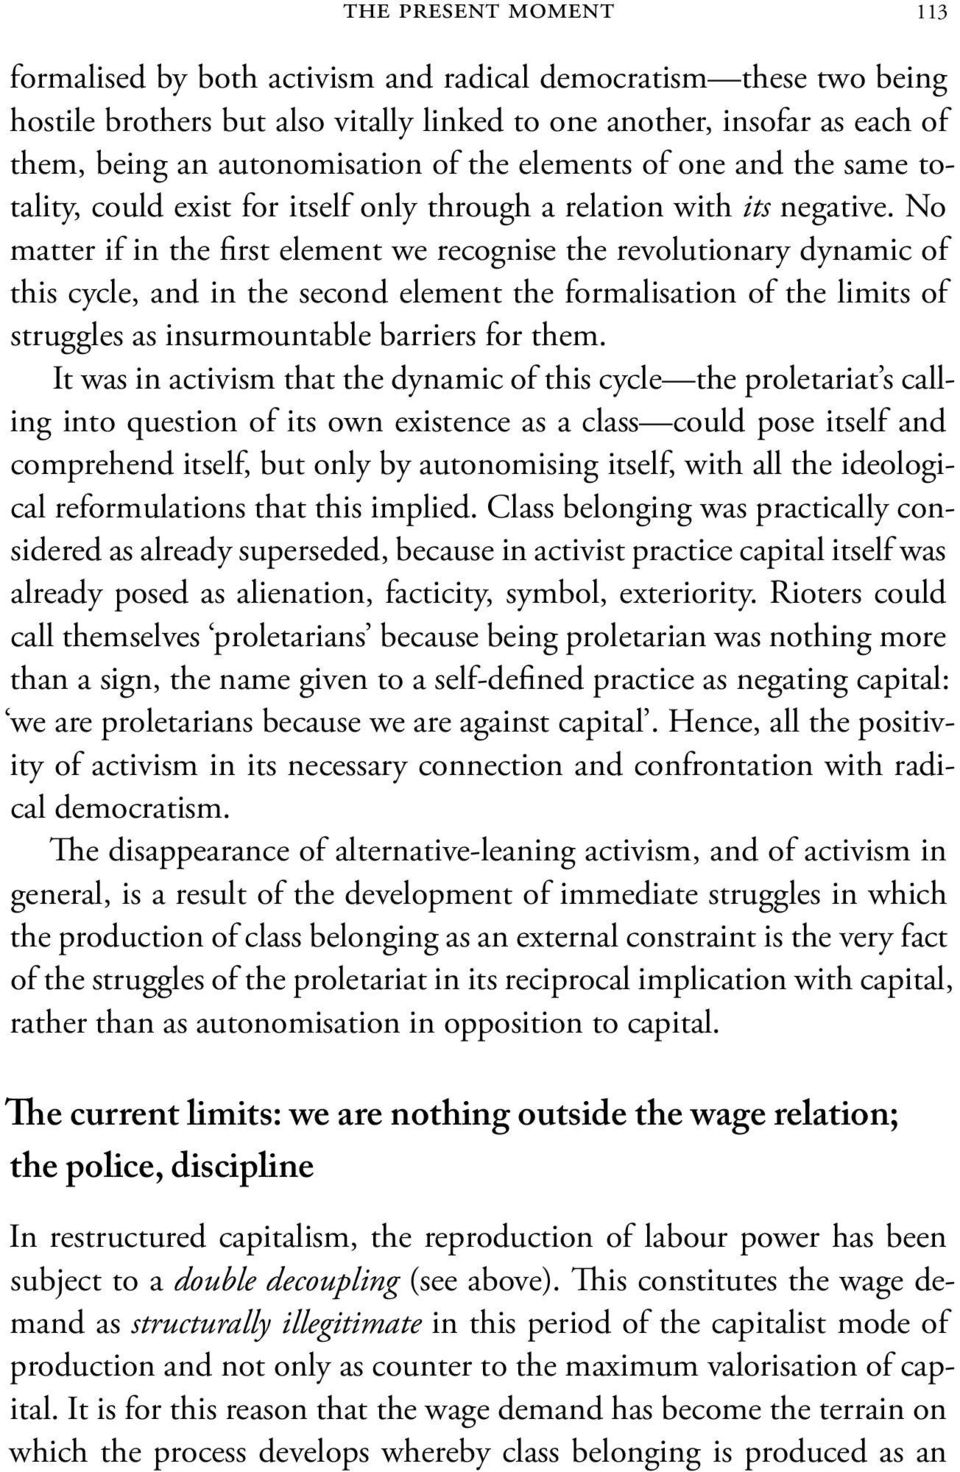 No matter if in the first element we recognise the revolutionary dynamic of this cycle, and in the second element the formalisation of the limits of struggles as insurmountable barriers for them.